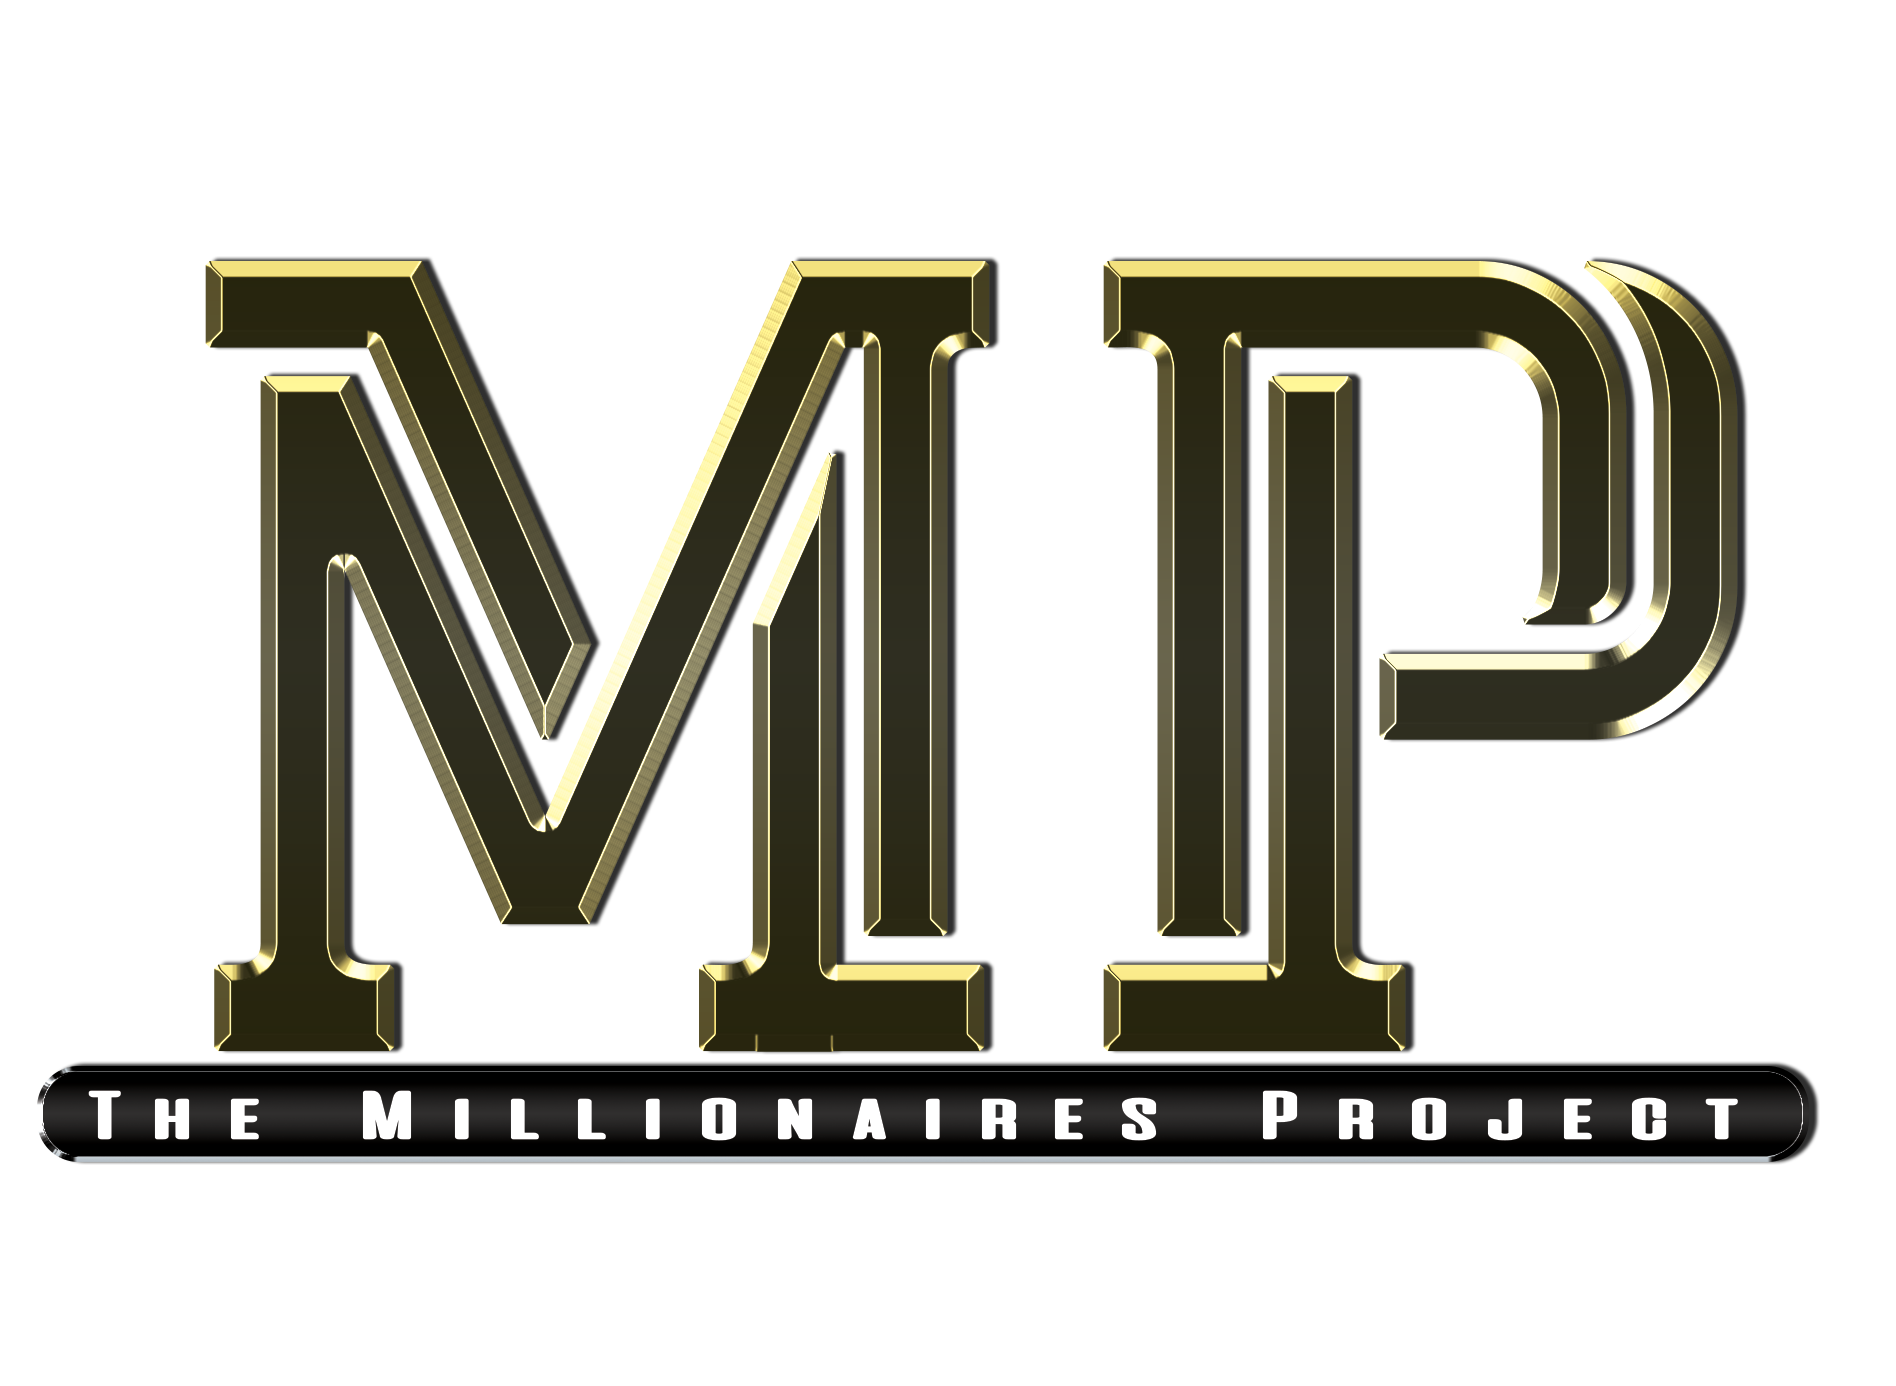 The Millionaires Project